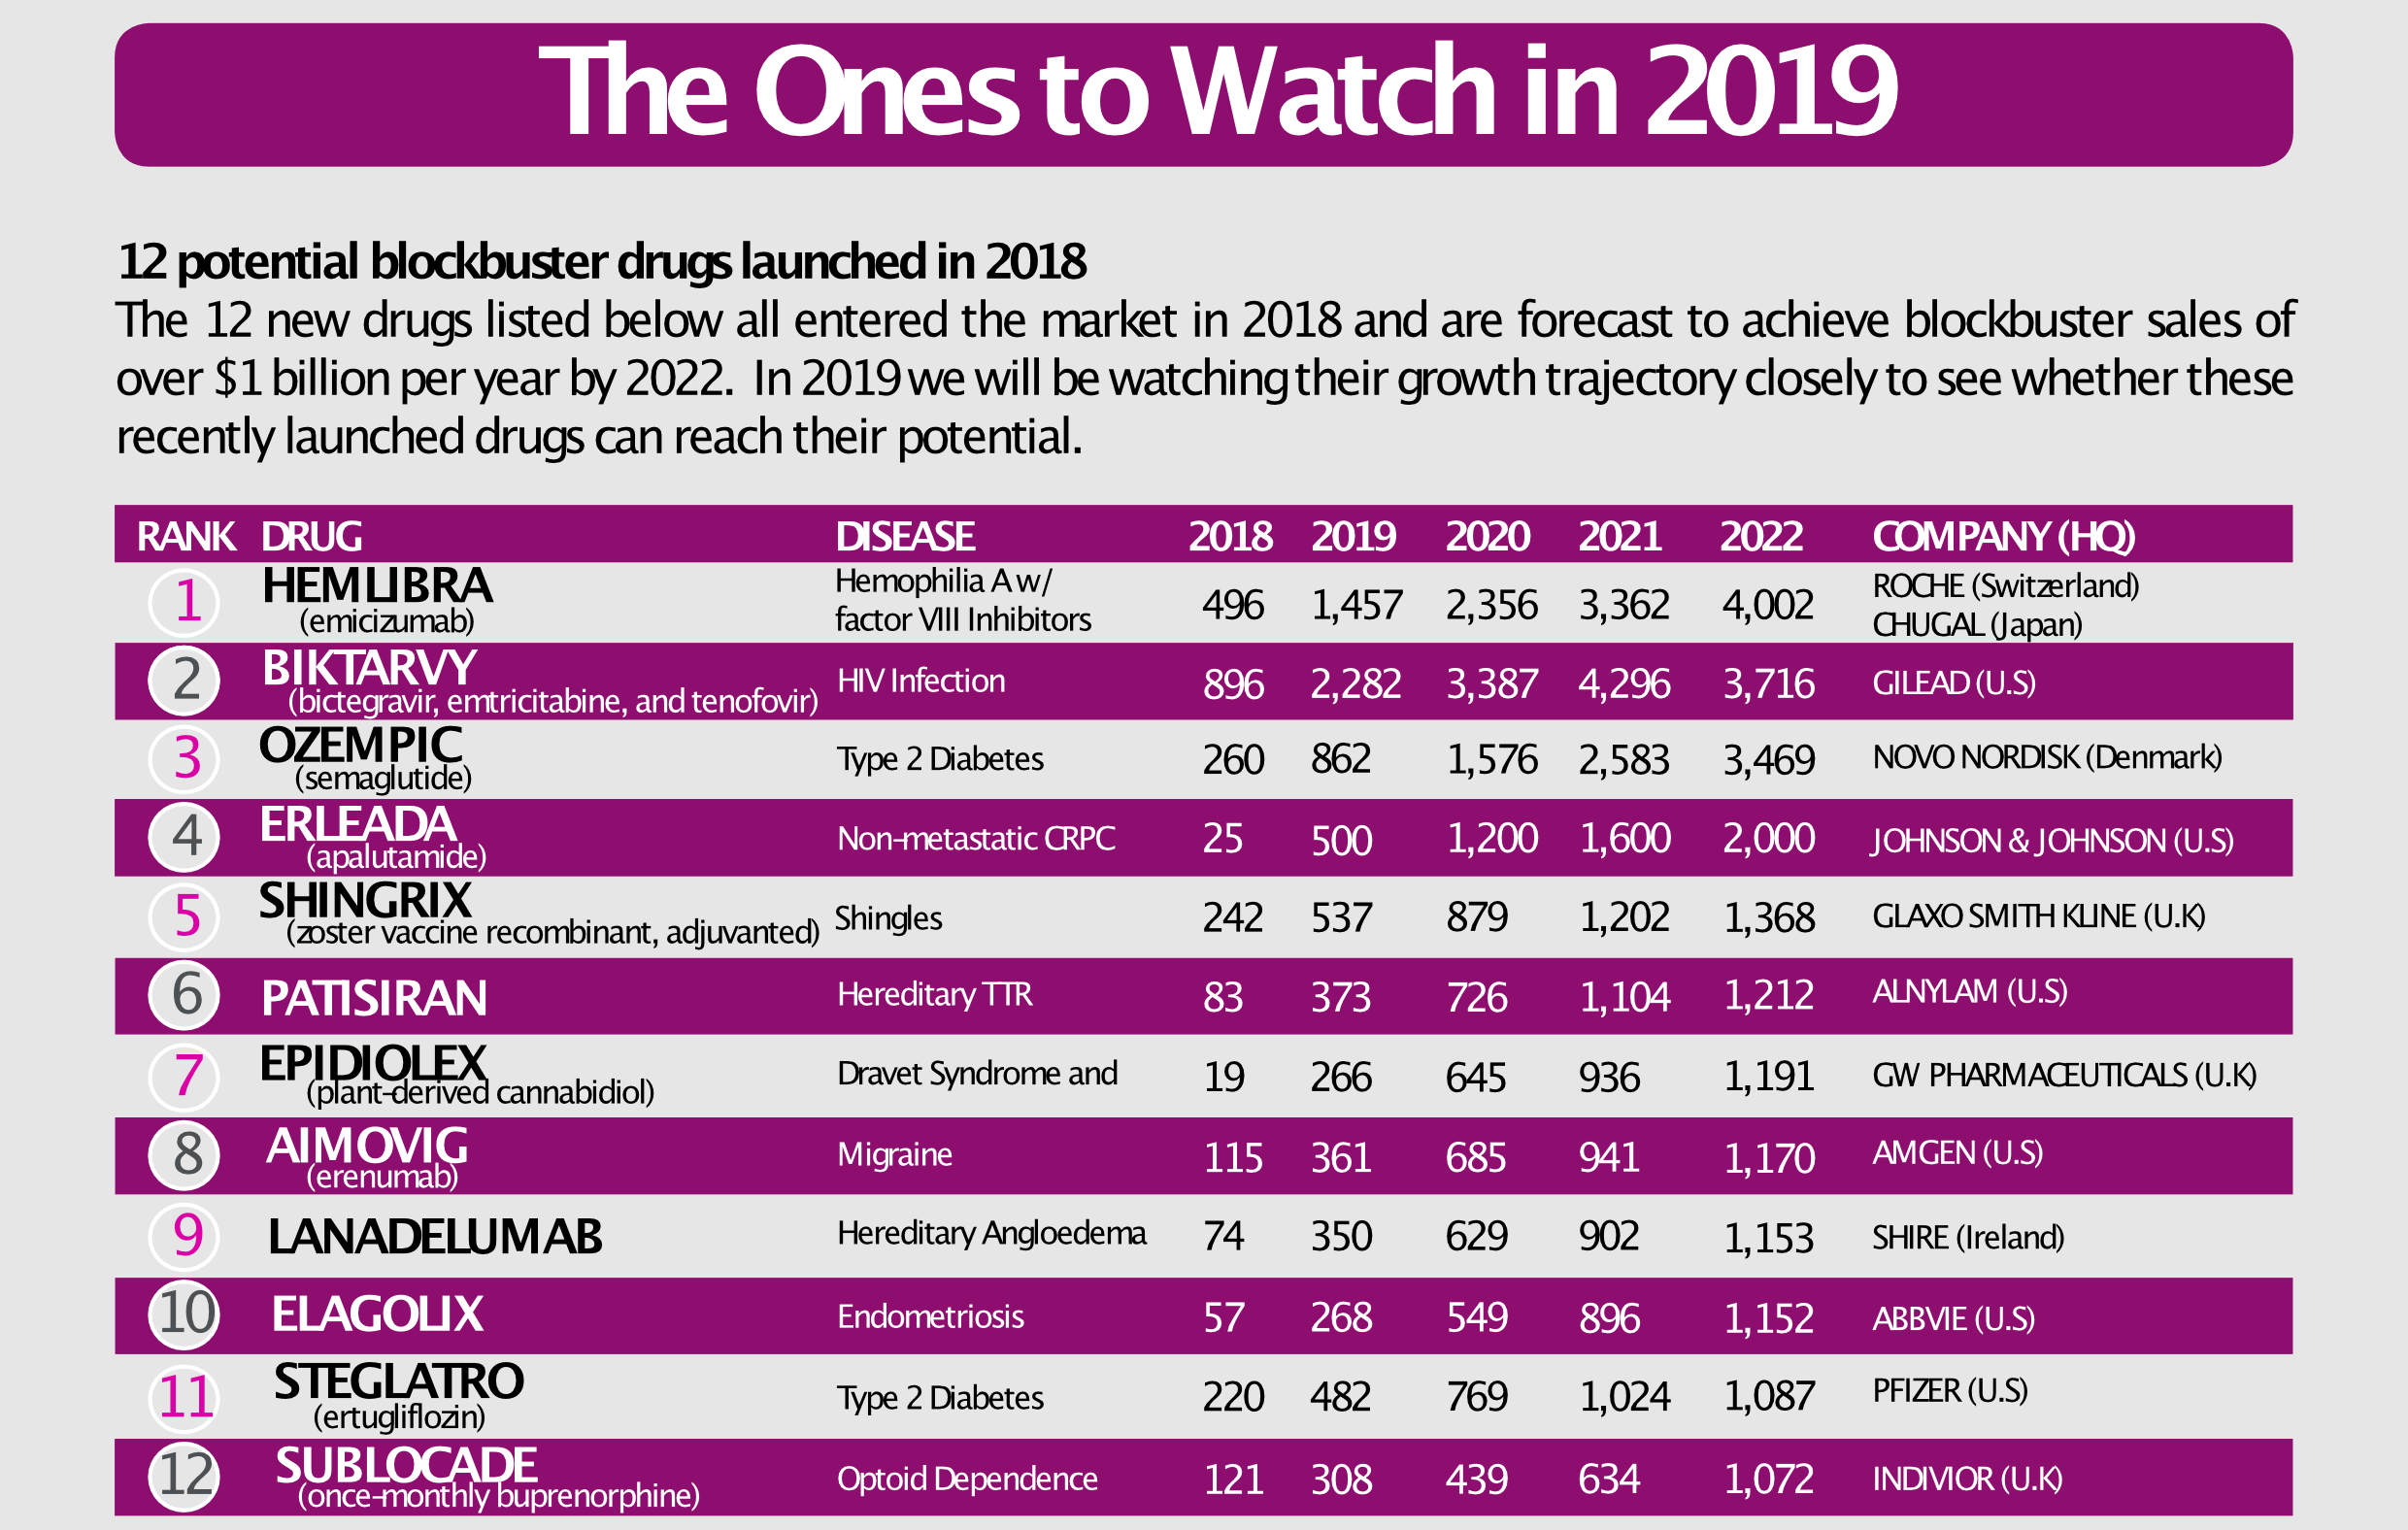 The Ones To Watch Table